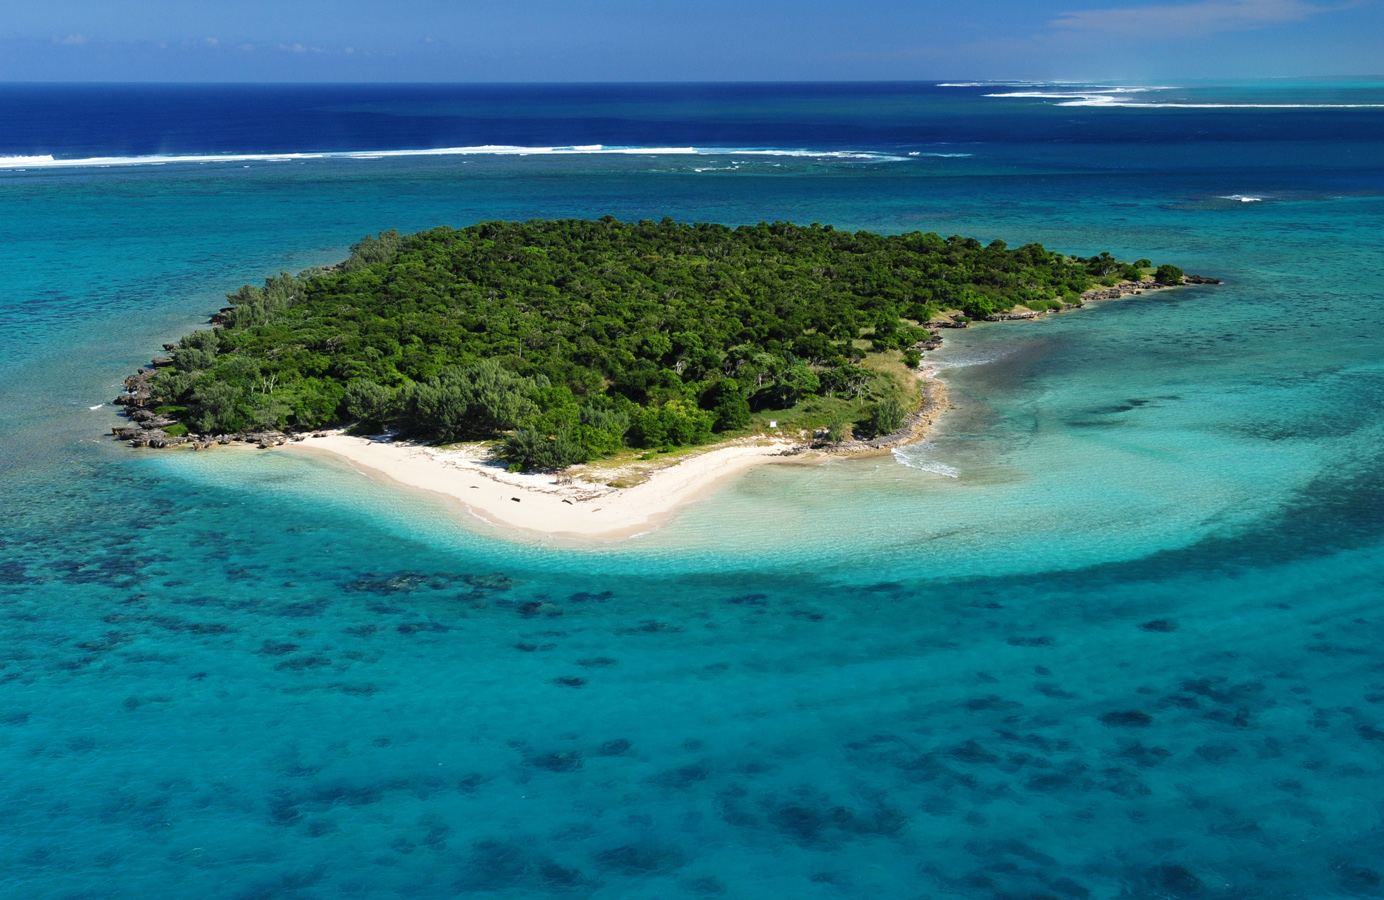 Aerial view of a wooded island with a small white sand beach in very blue sea, New Caledonia